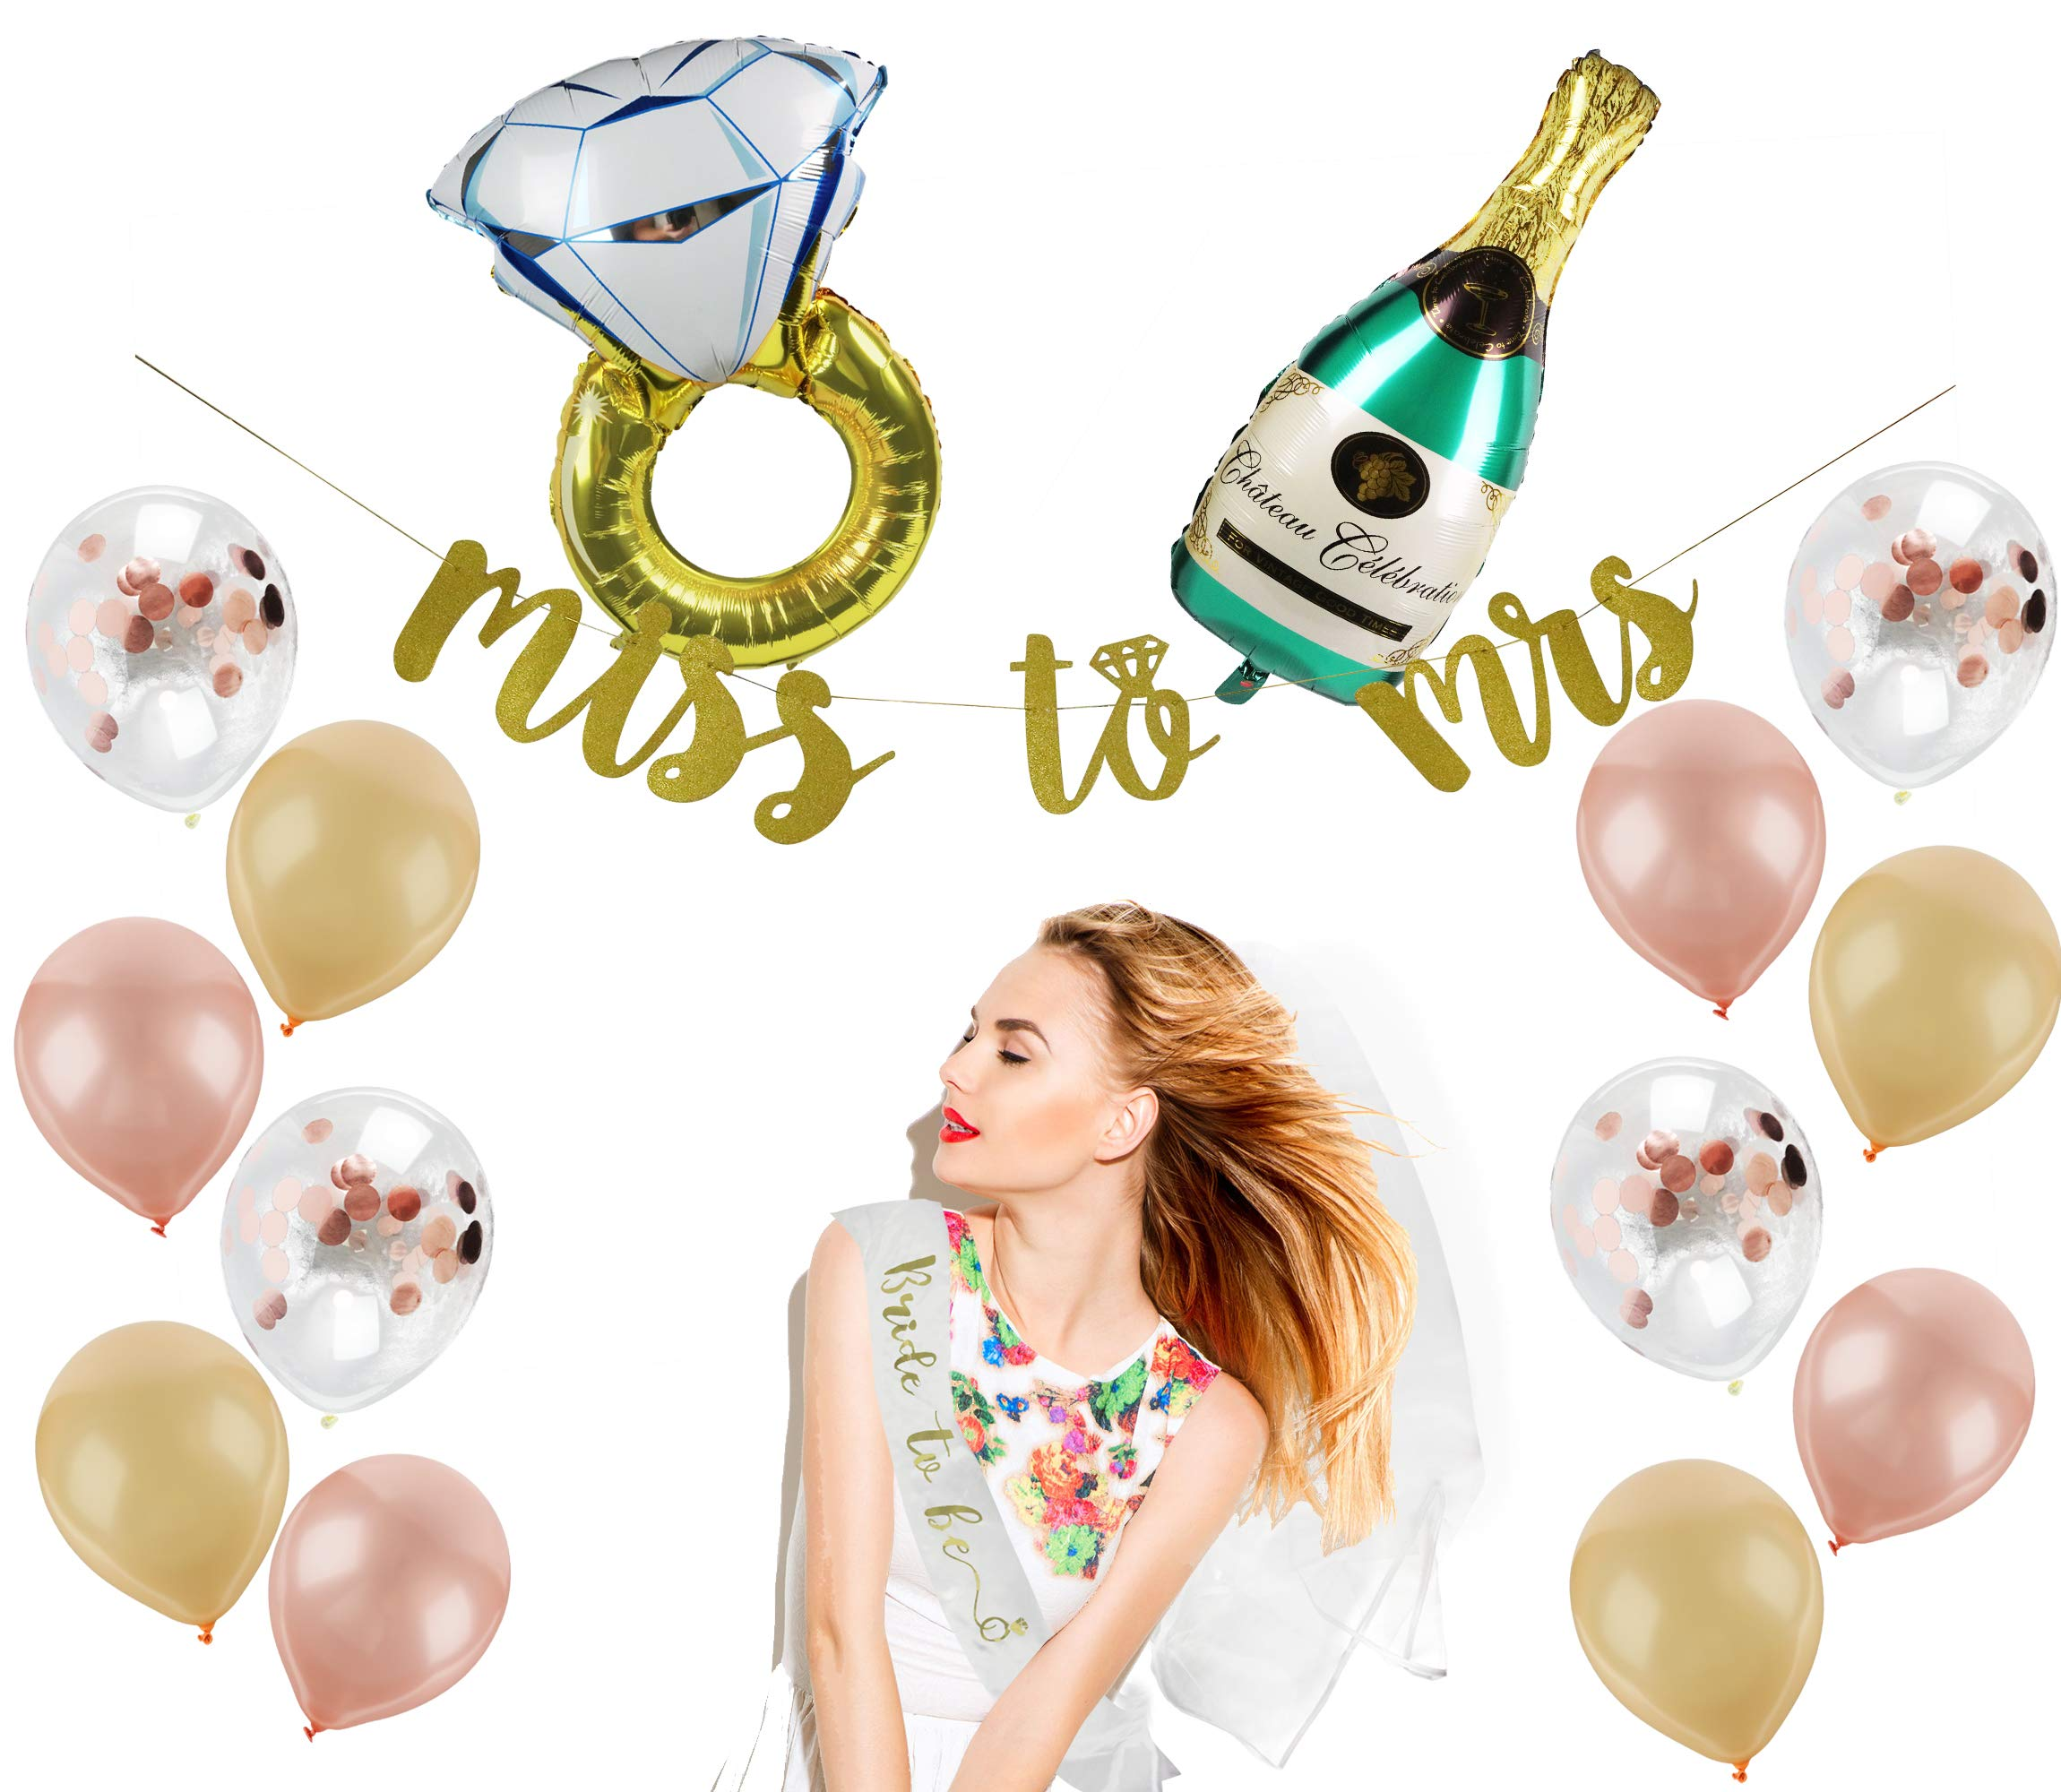 Bachelorette Party Decorations Kit | Bridal Shower Decorations Set | Bride to Be Sash, Veil, Champagne + Ring Foil Balloon, Rose Gold Balloons + Pink/Beige Balloons, Gold Glitter Ms to Mrs Banner by Party Craze